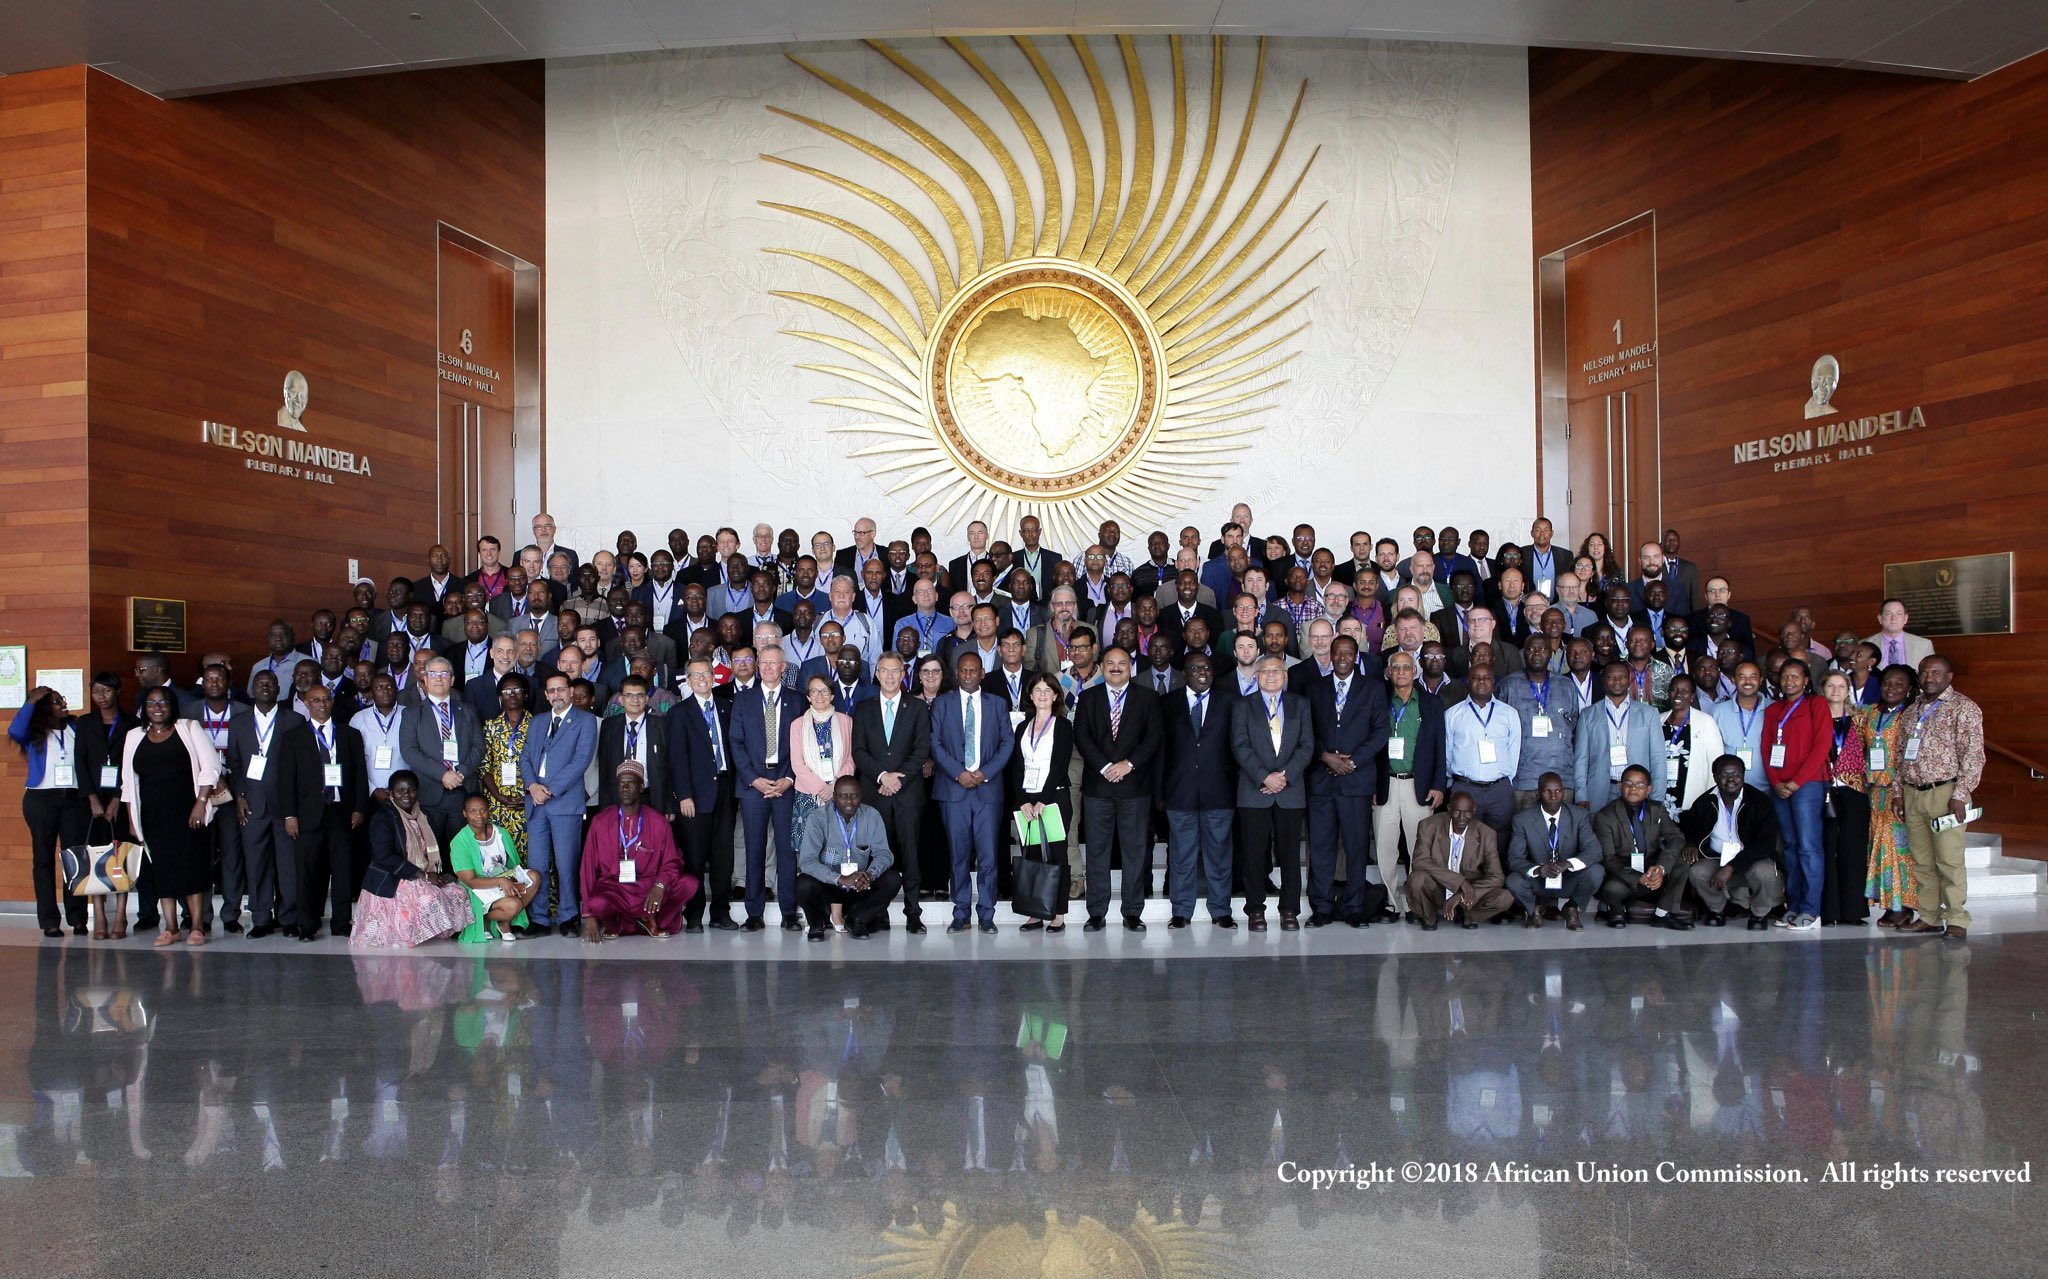 The conference organized by the Fall Armyworm R4D International Consortium attracted the interest of a large group of participants. (Photo: African Union Commission)